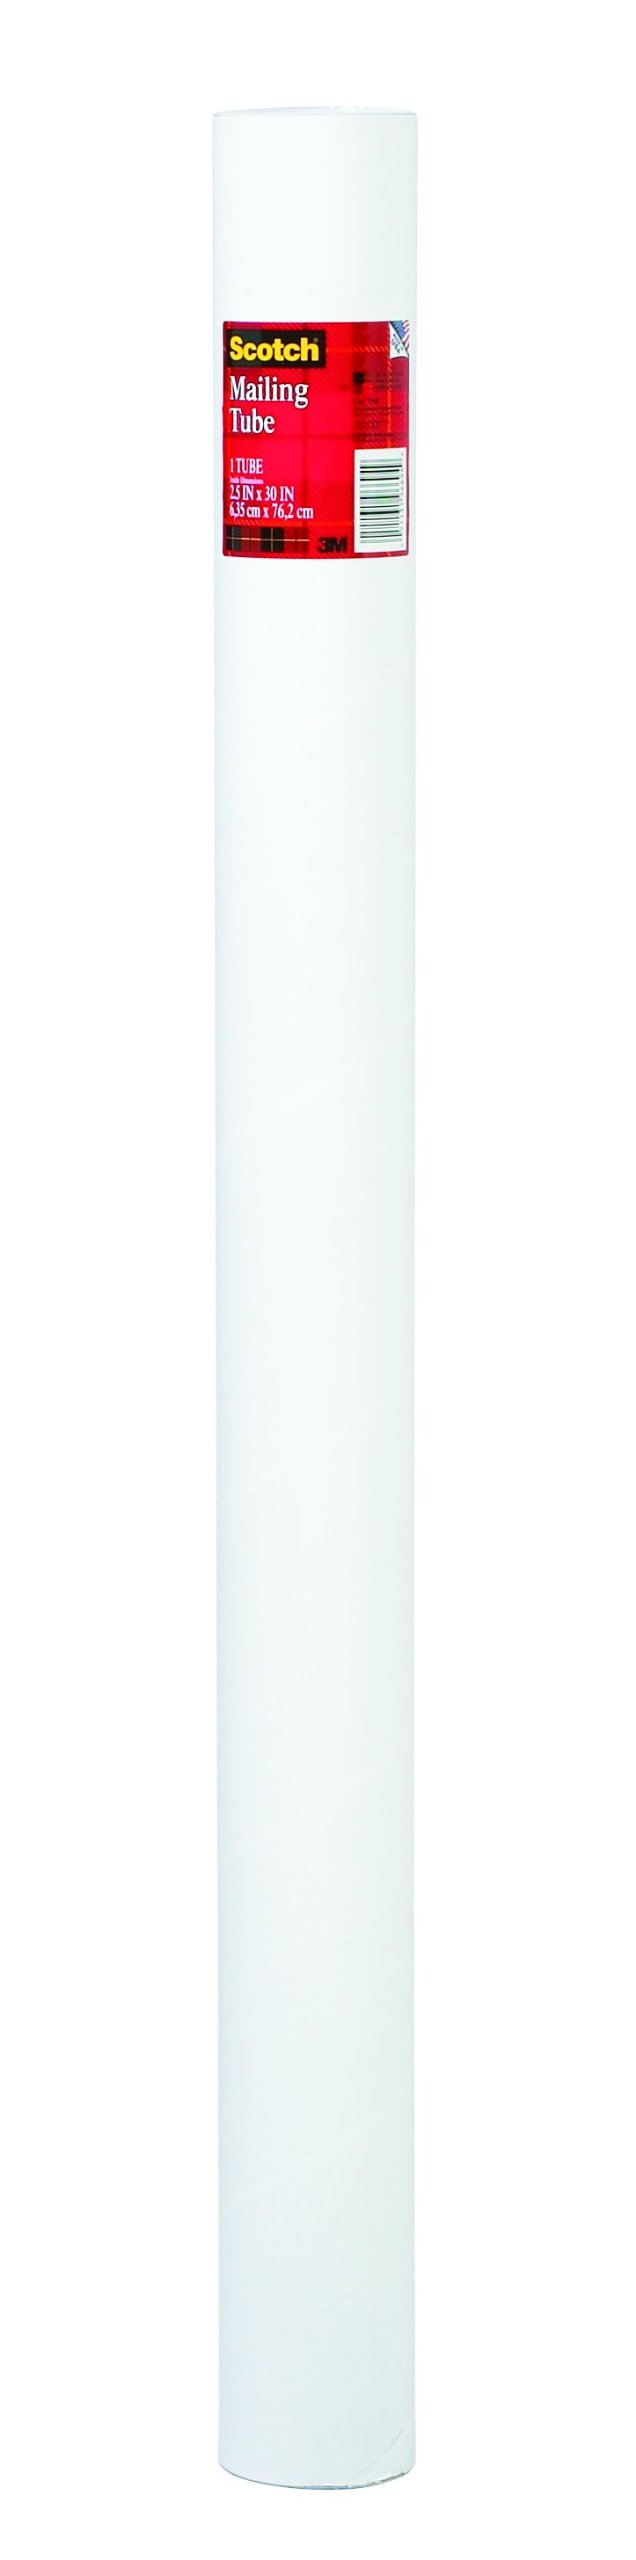 Scotch Mailing Tube, 2.5 x 30-Inches, Pack of 12